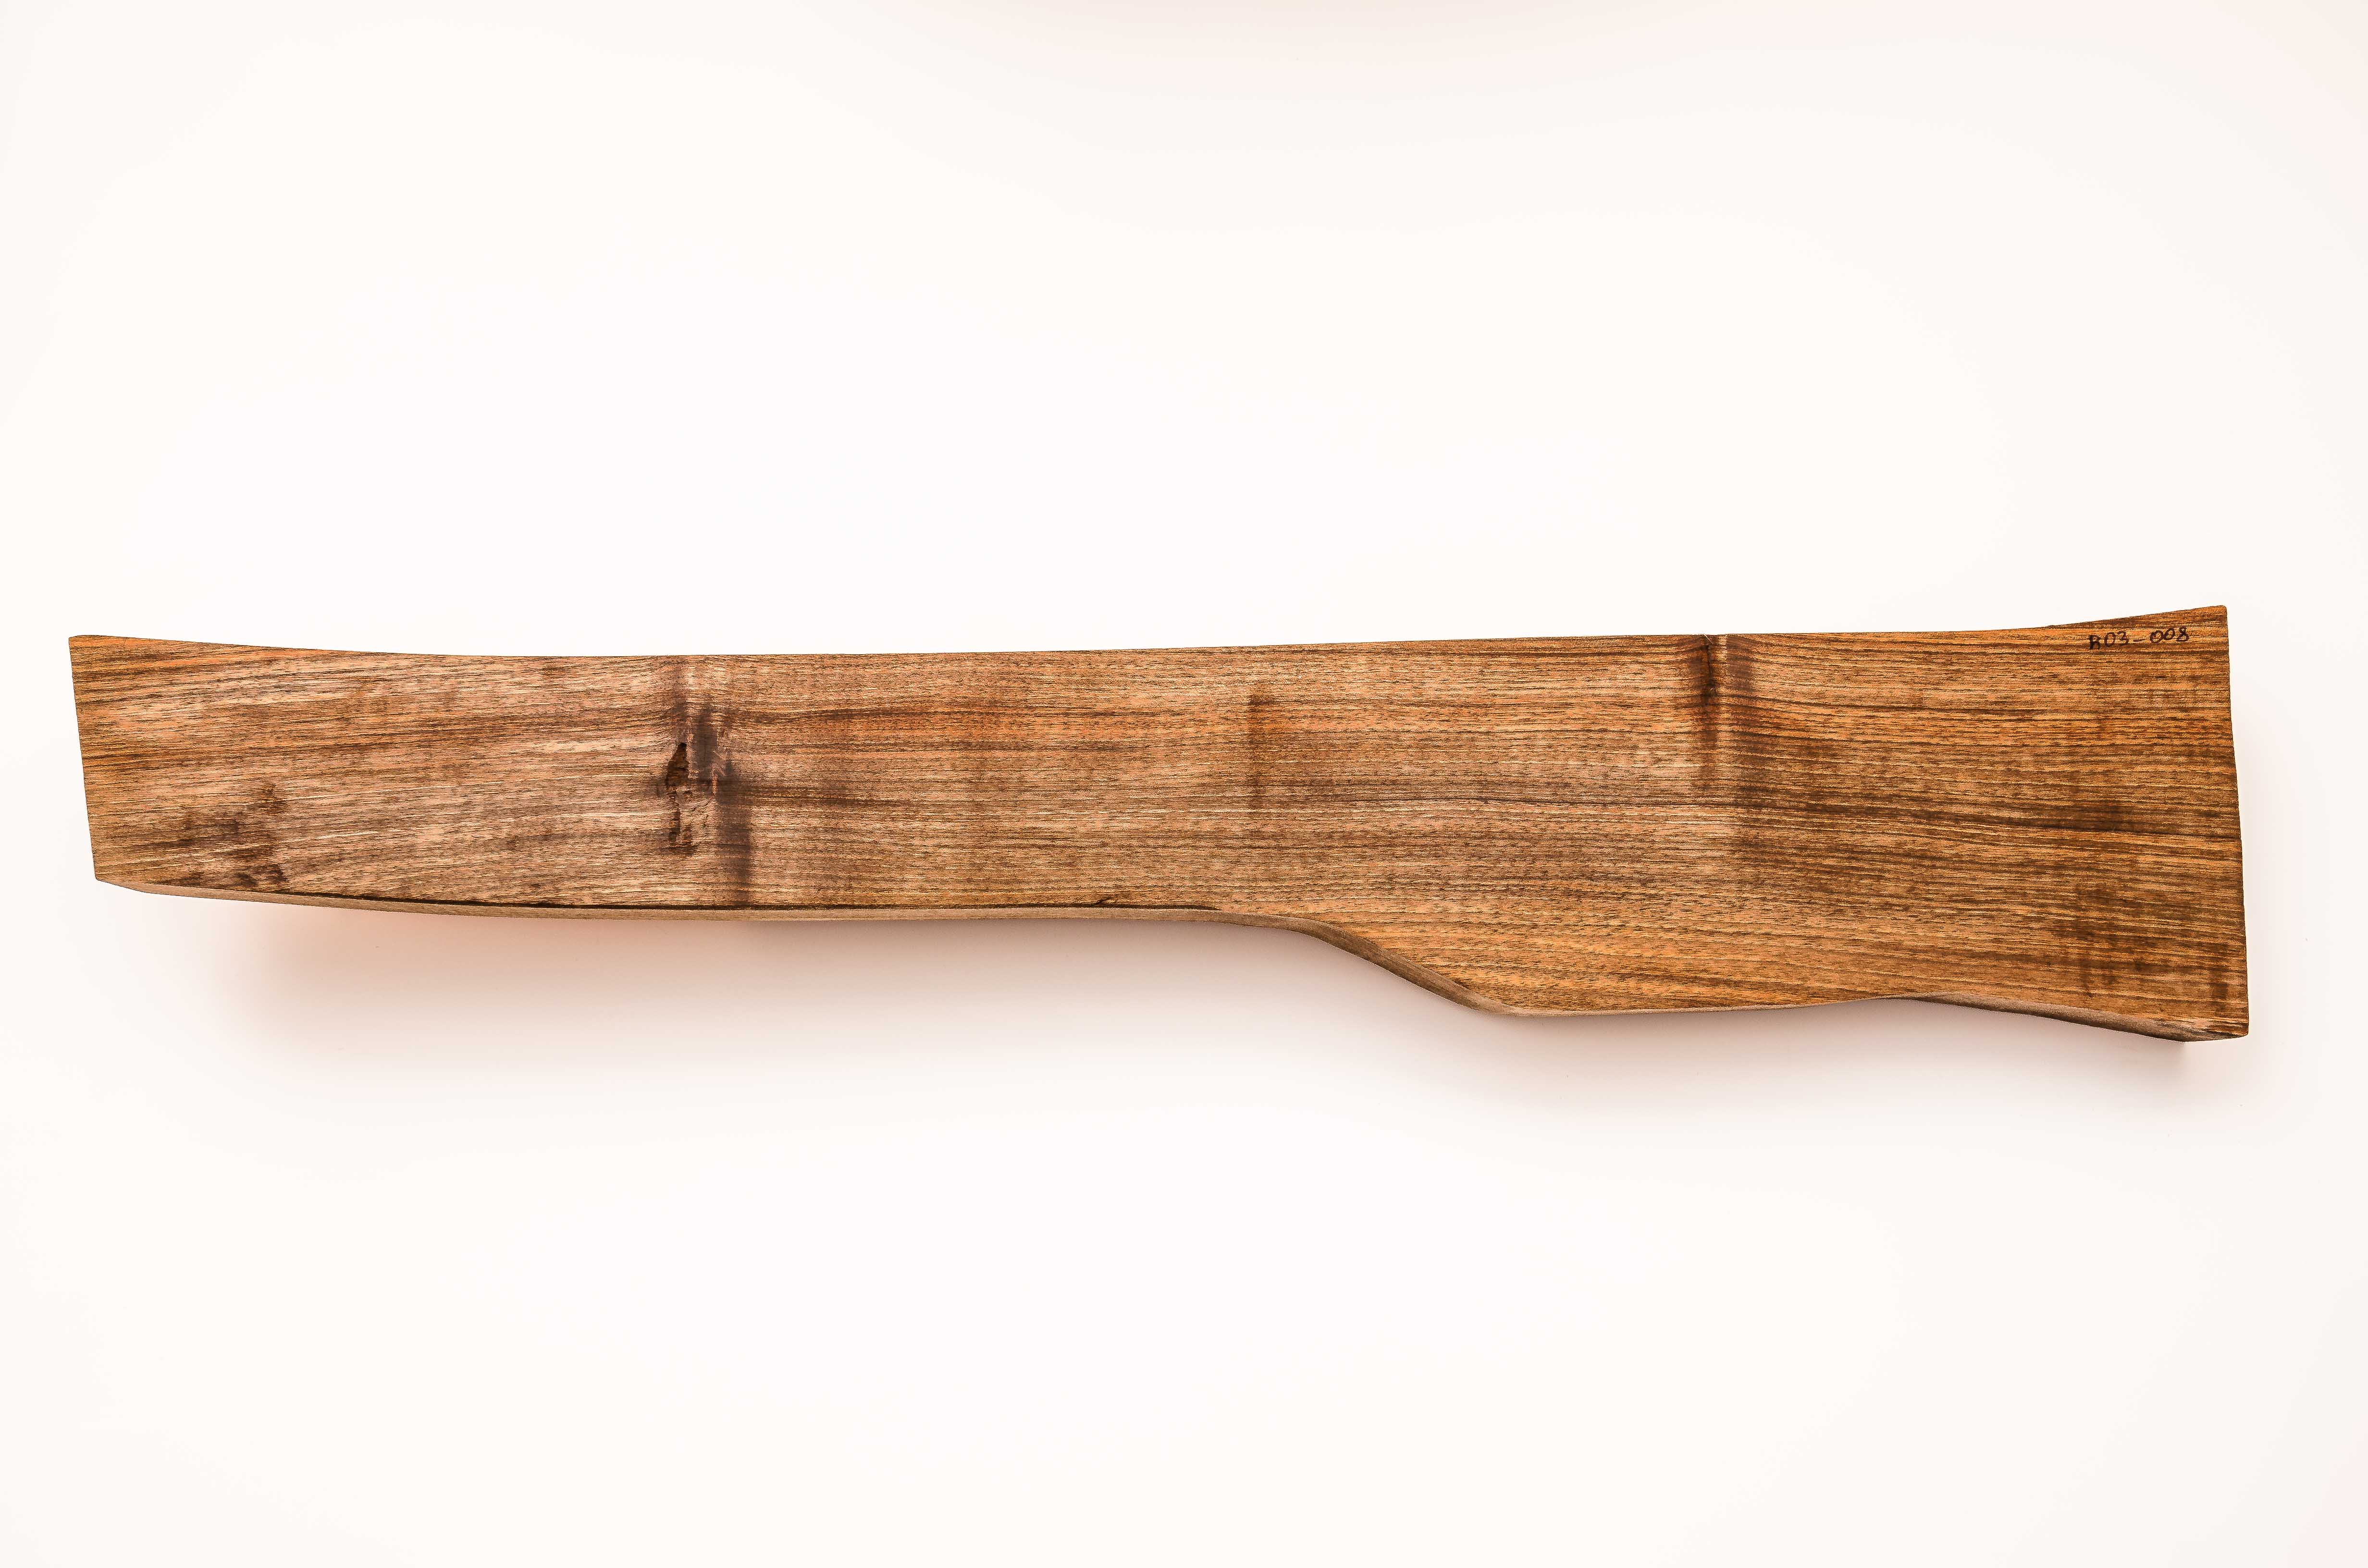 walnut_stock_blanks_for_guns_and_rifles (9 of 11)